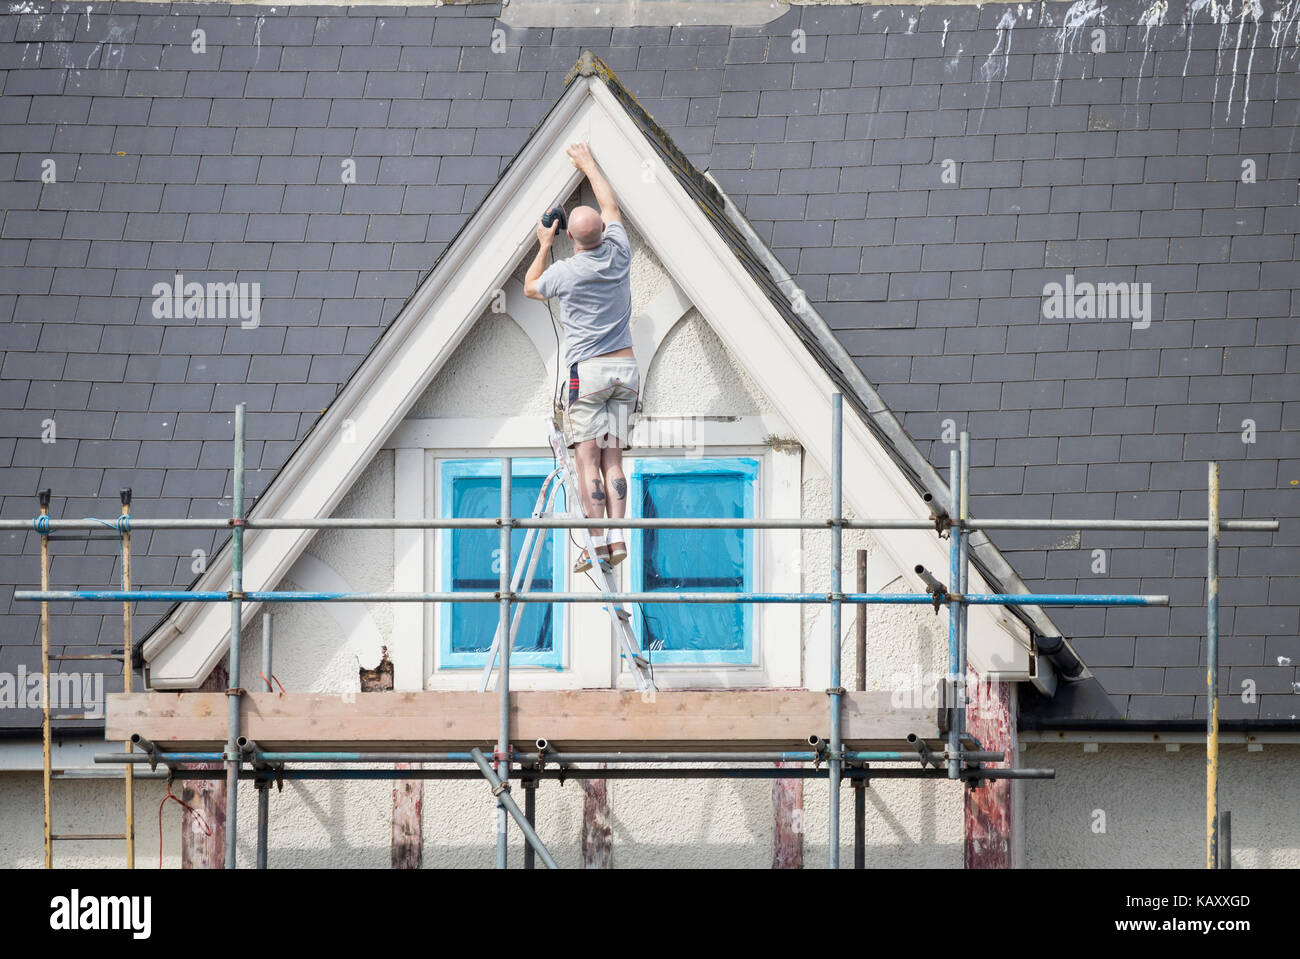 Man precariously standing on step ladder on scaffolding while repairing woodwork around house window. UK - Stock Image